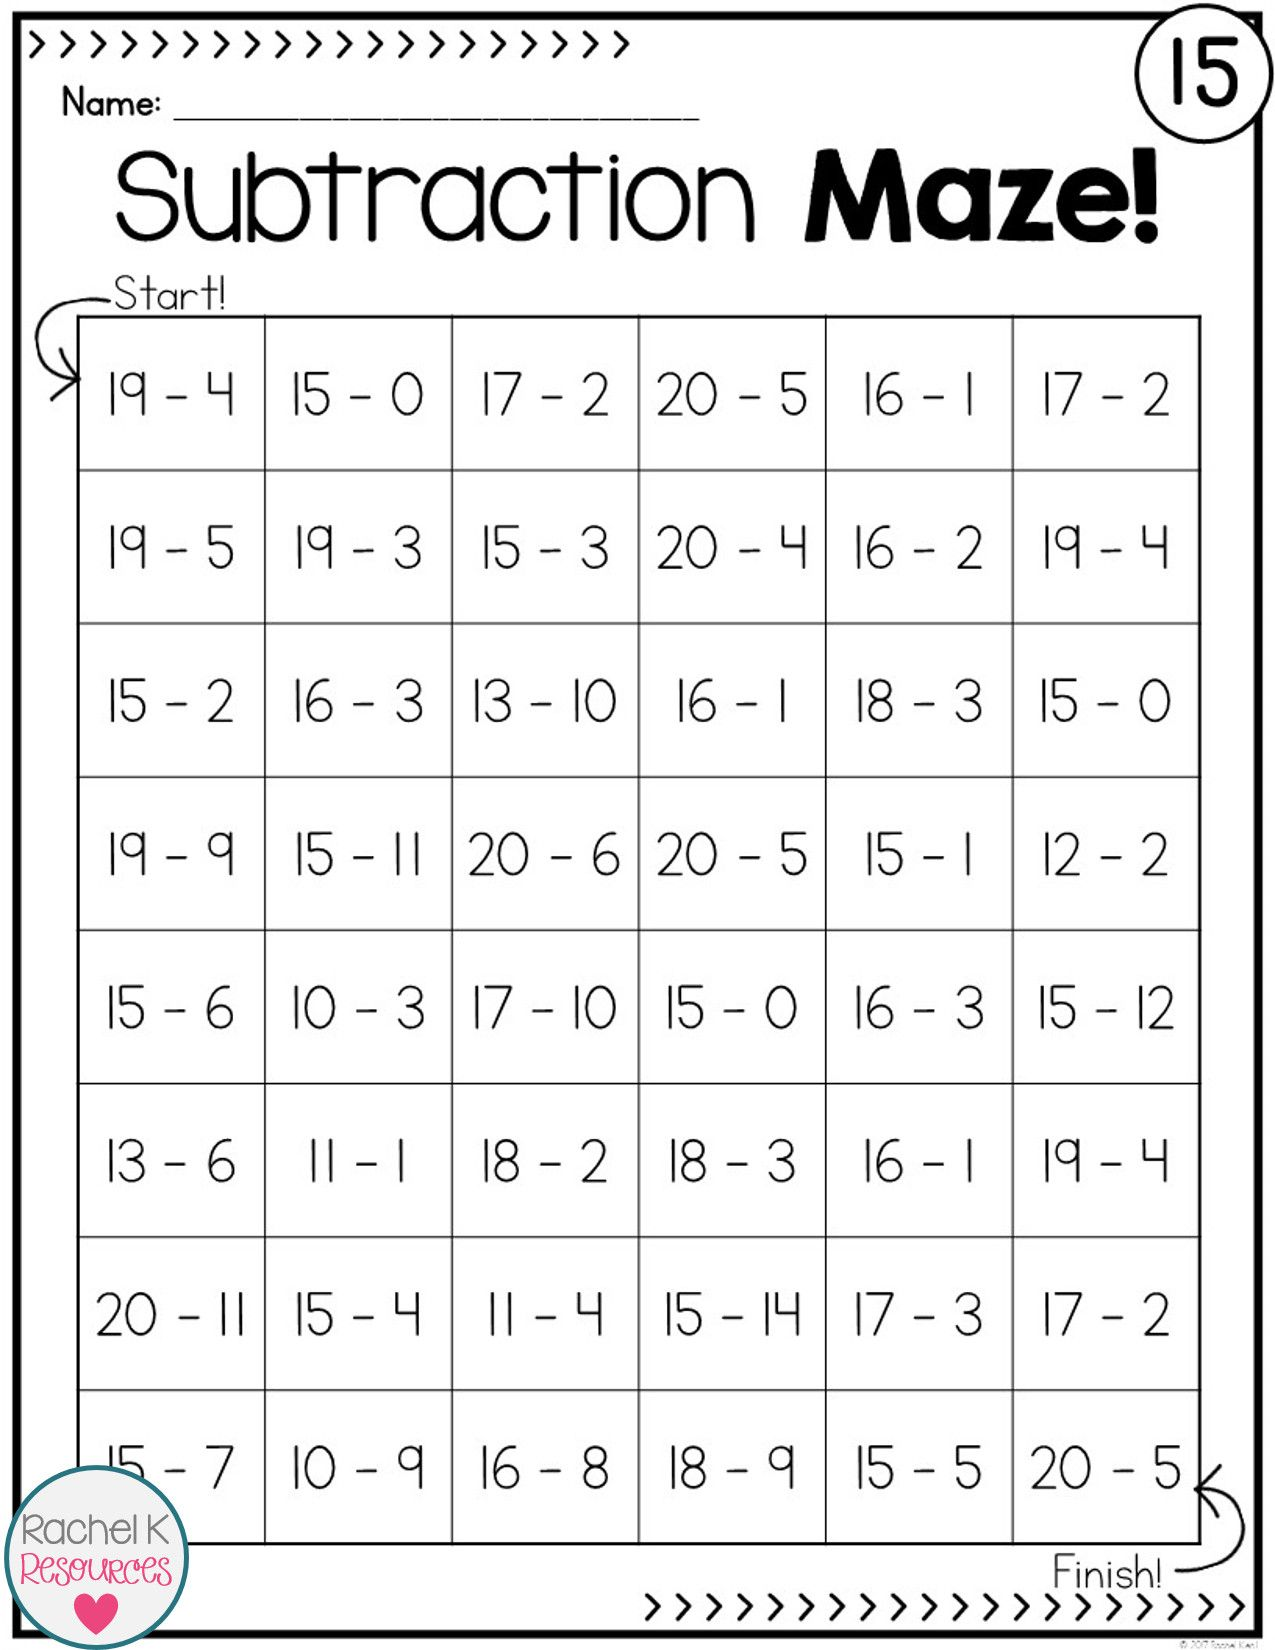 4 Free Math Worksheets Second Grade 2 Addition Adding Whole Tens 3 Digits Missing Number 0d2e Subtraction Worksheets Subtraction Practice Math Subtraction